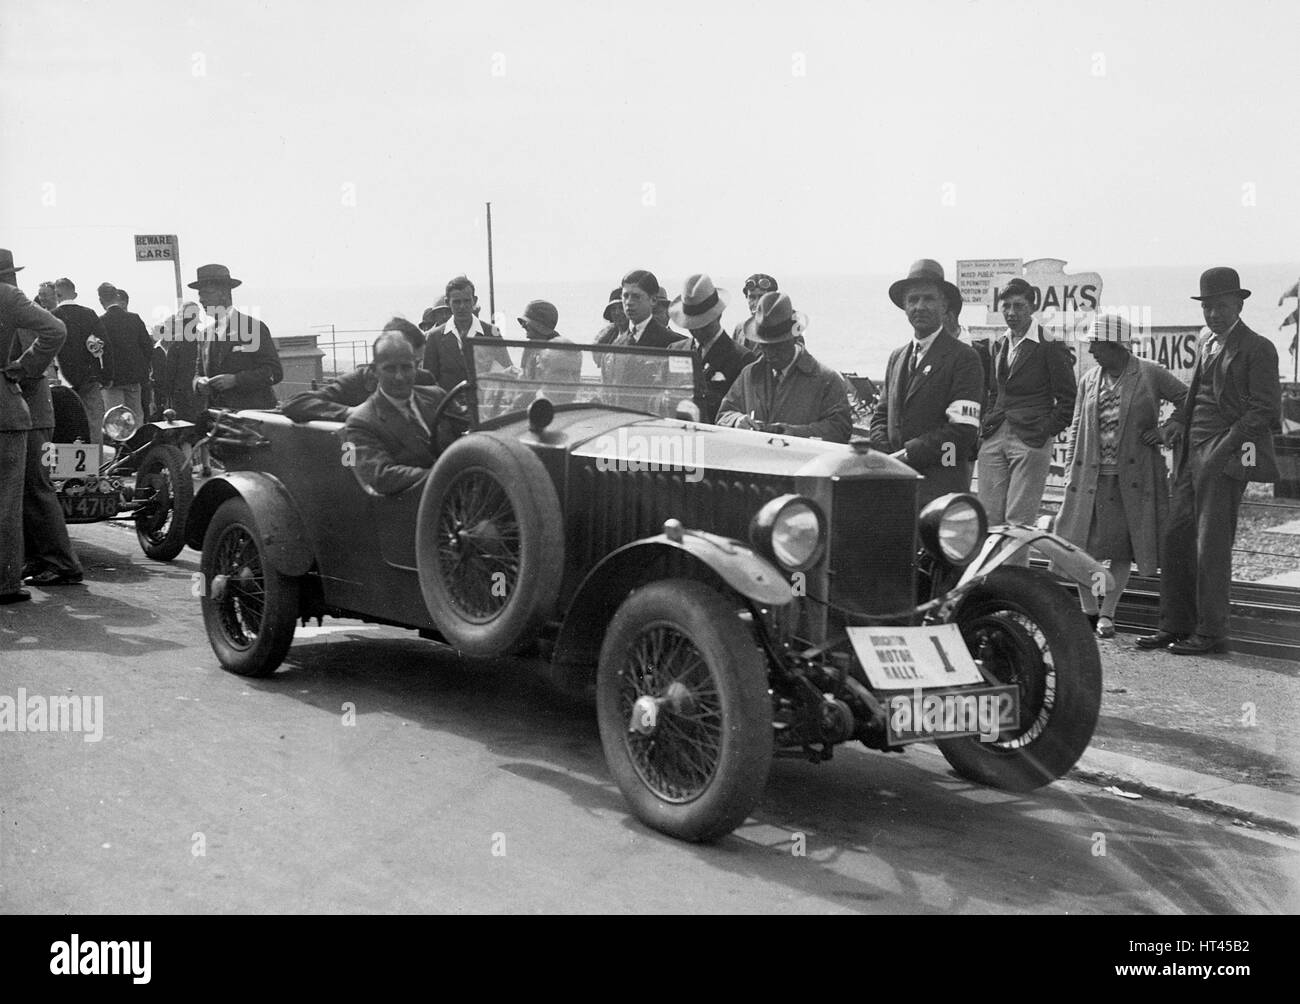 Invicta of DM Healey at the B&HMC Brighton Motor Rally, 1930. Artist: Bill Brunell. - Stock Image